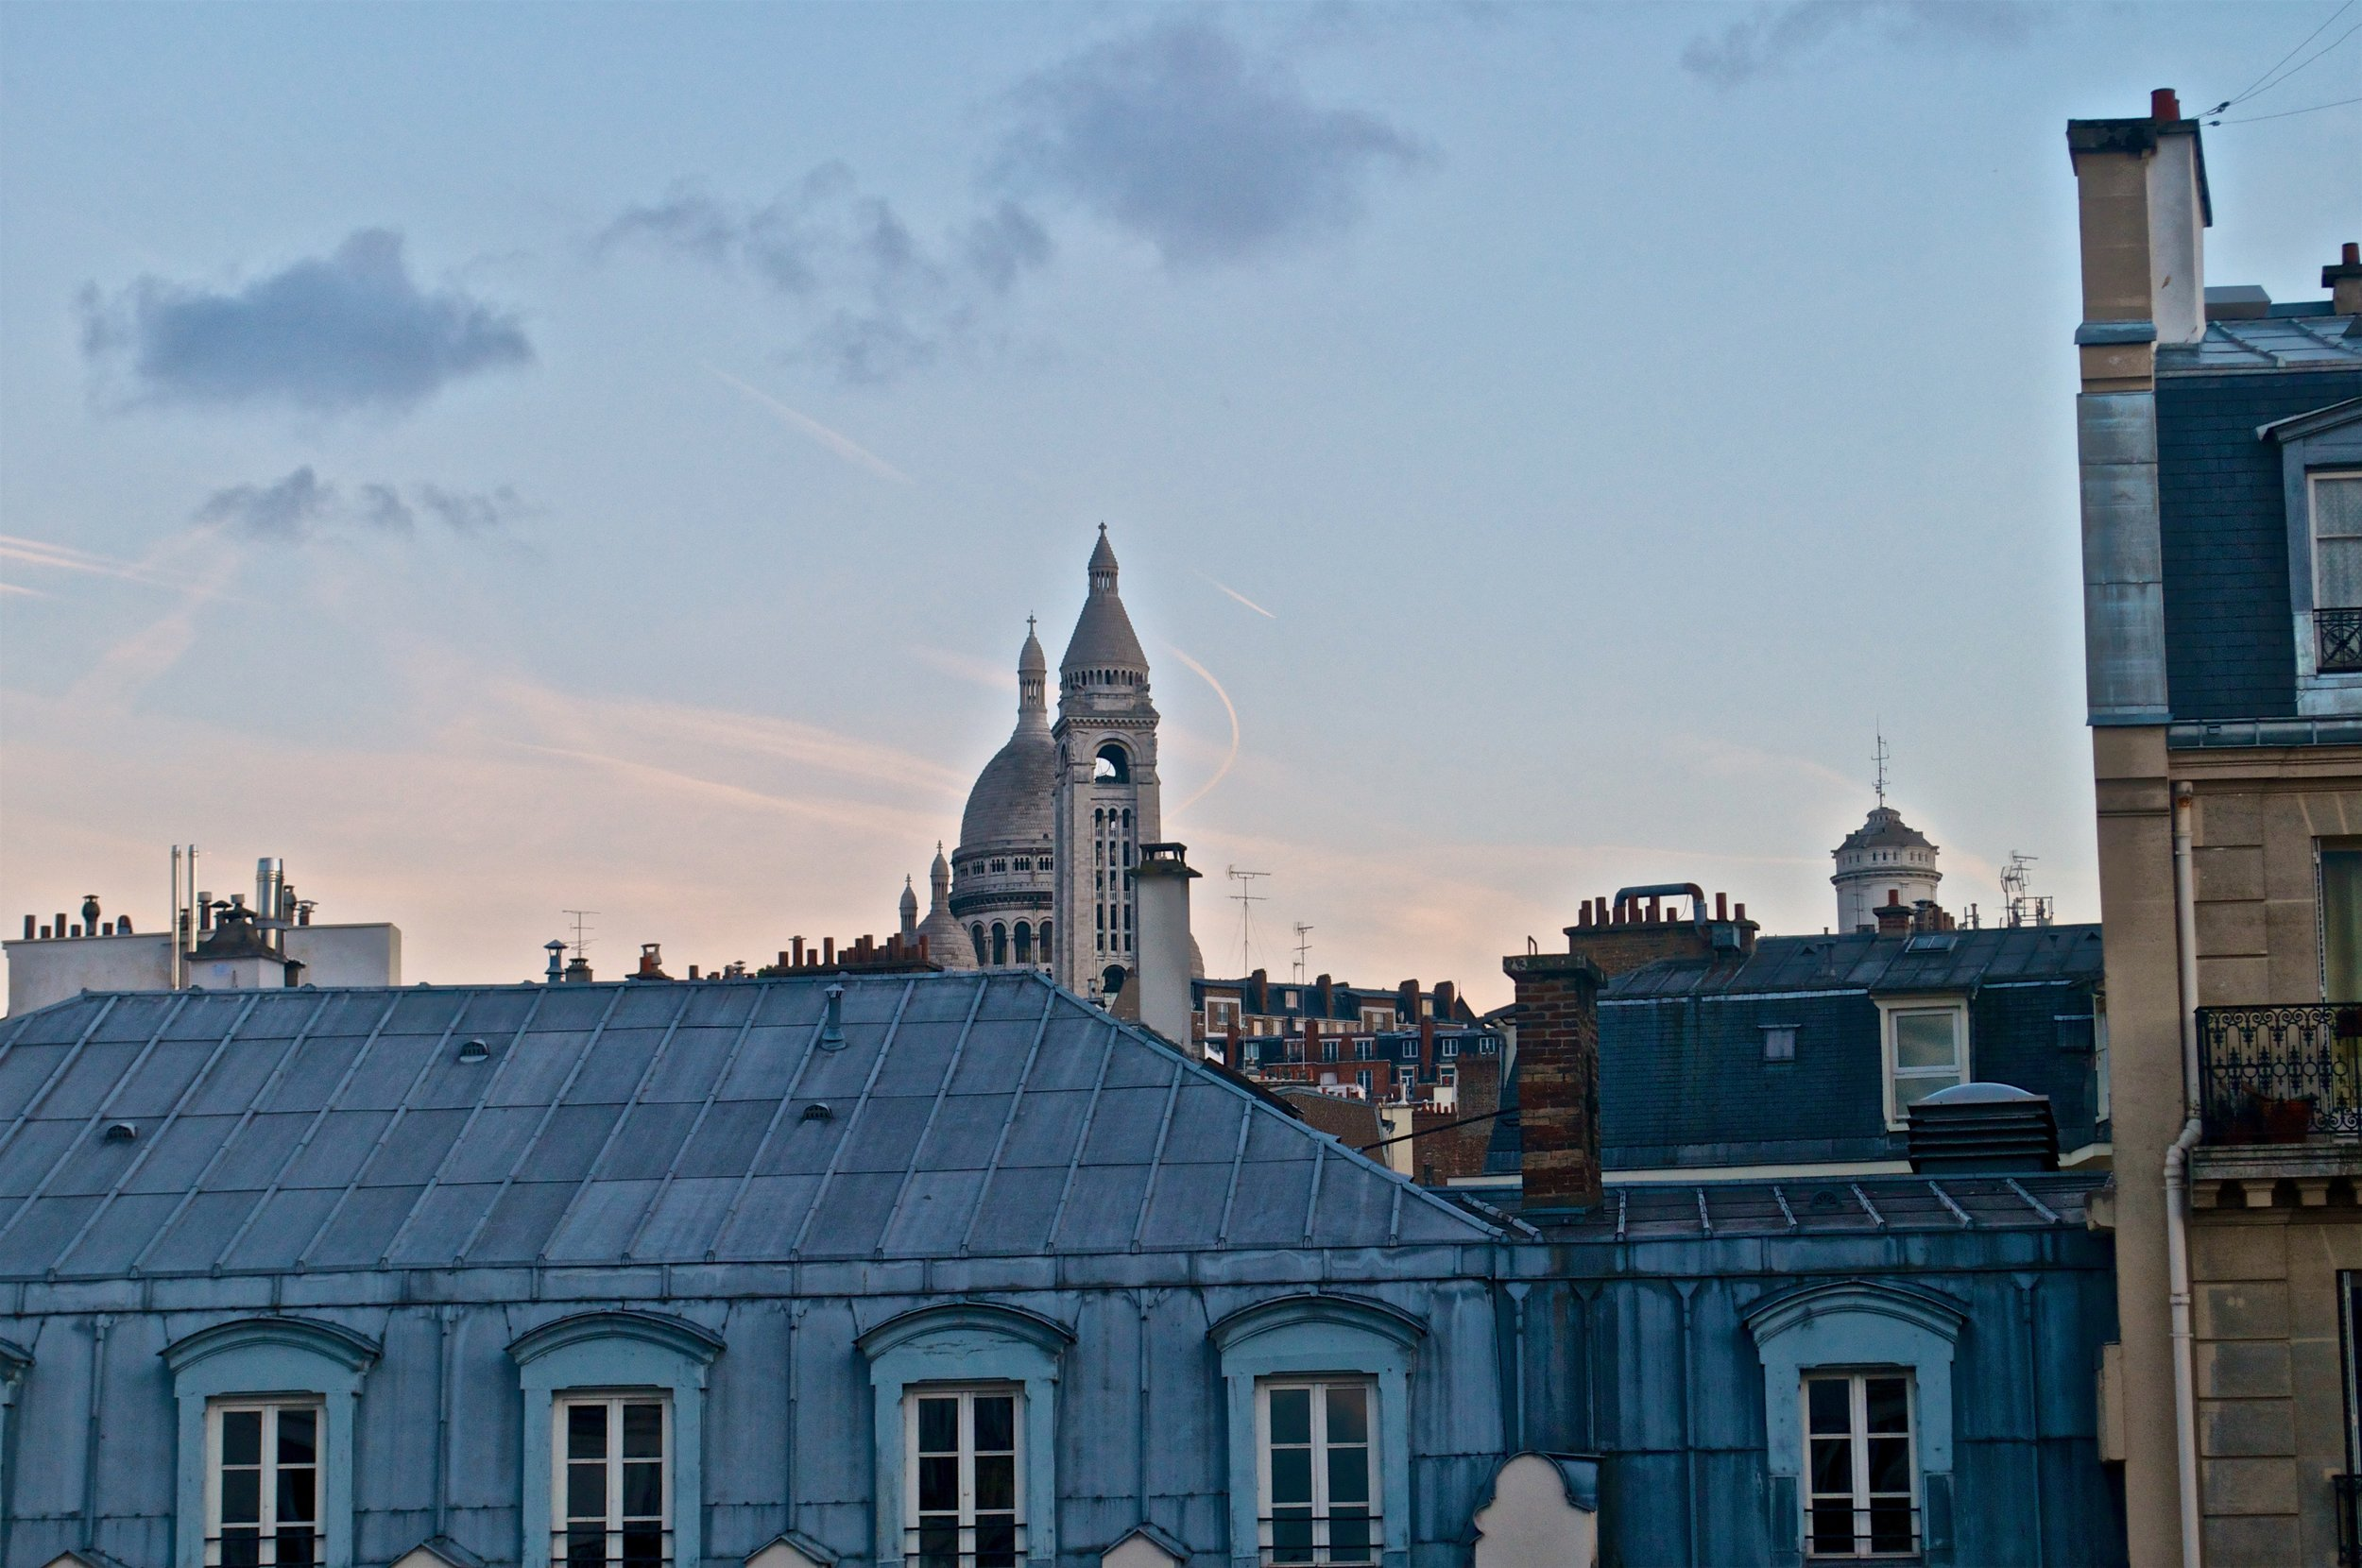 The View of Sacre Coeur and Montmartre from our Airbnb